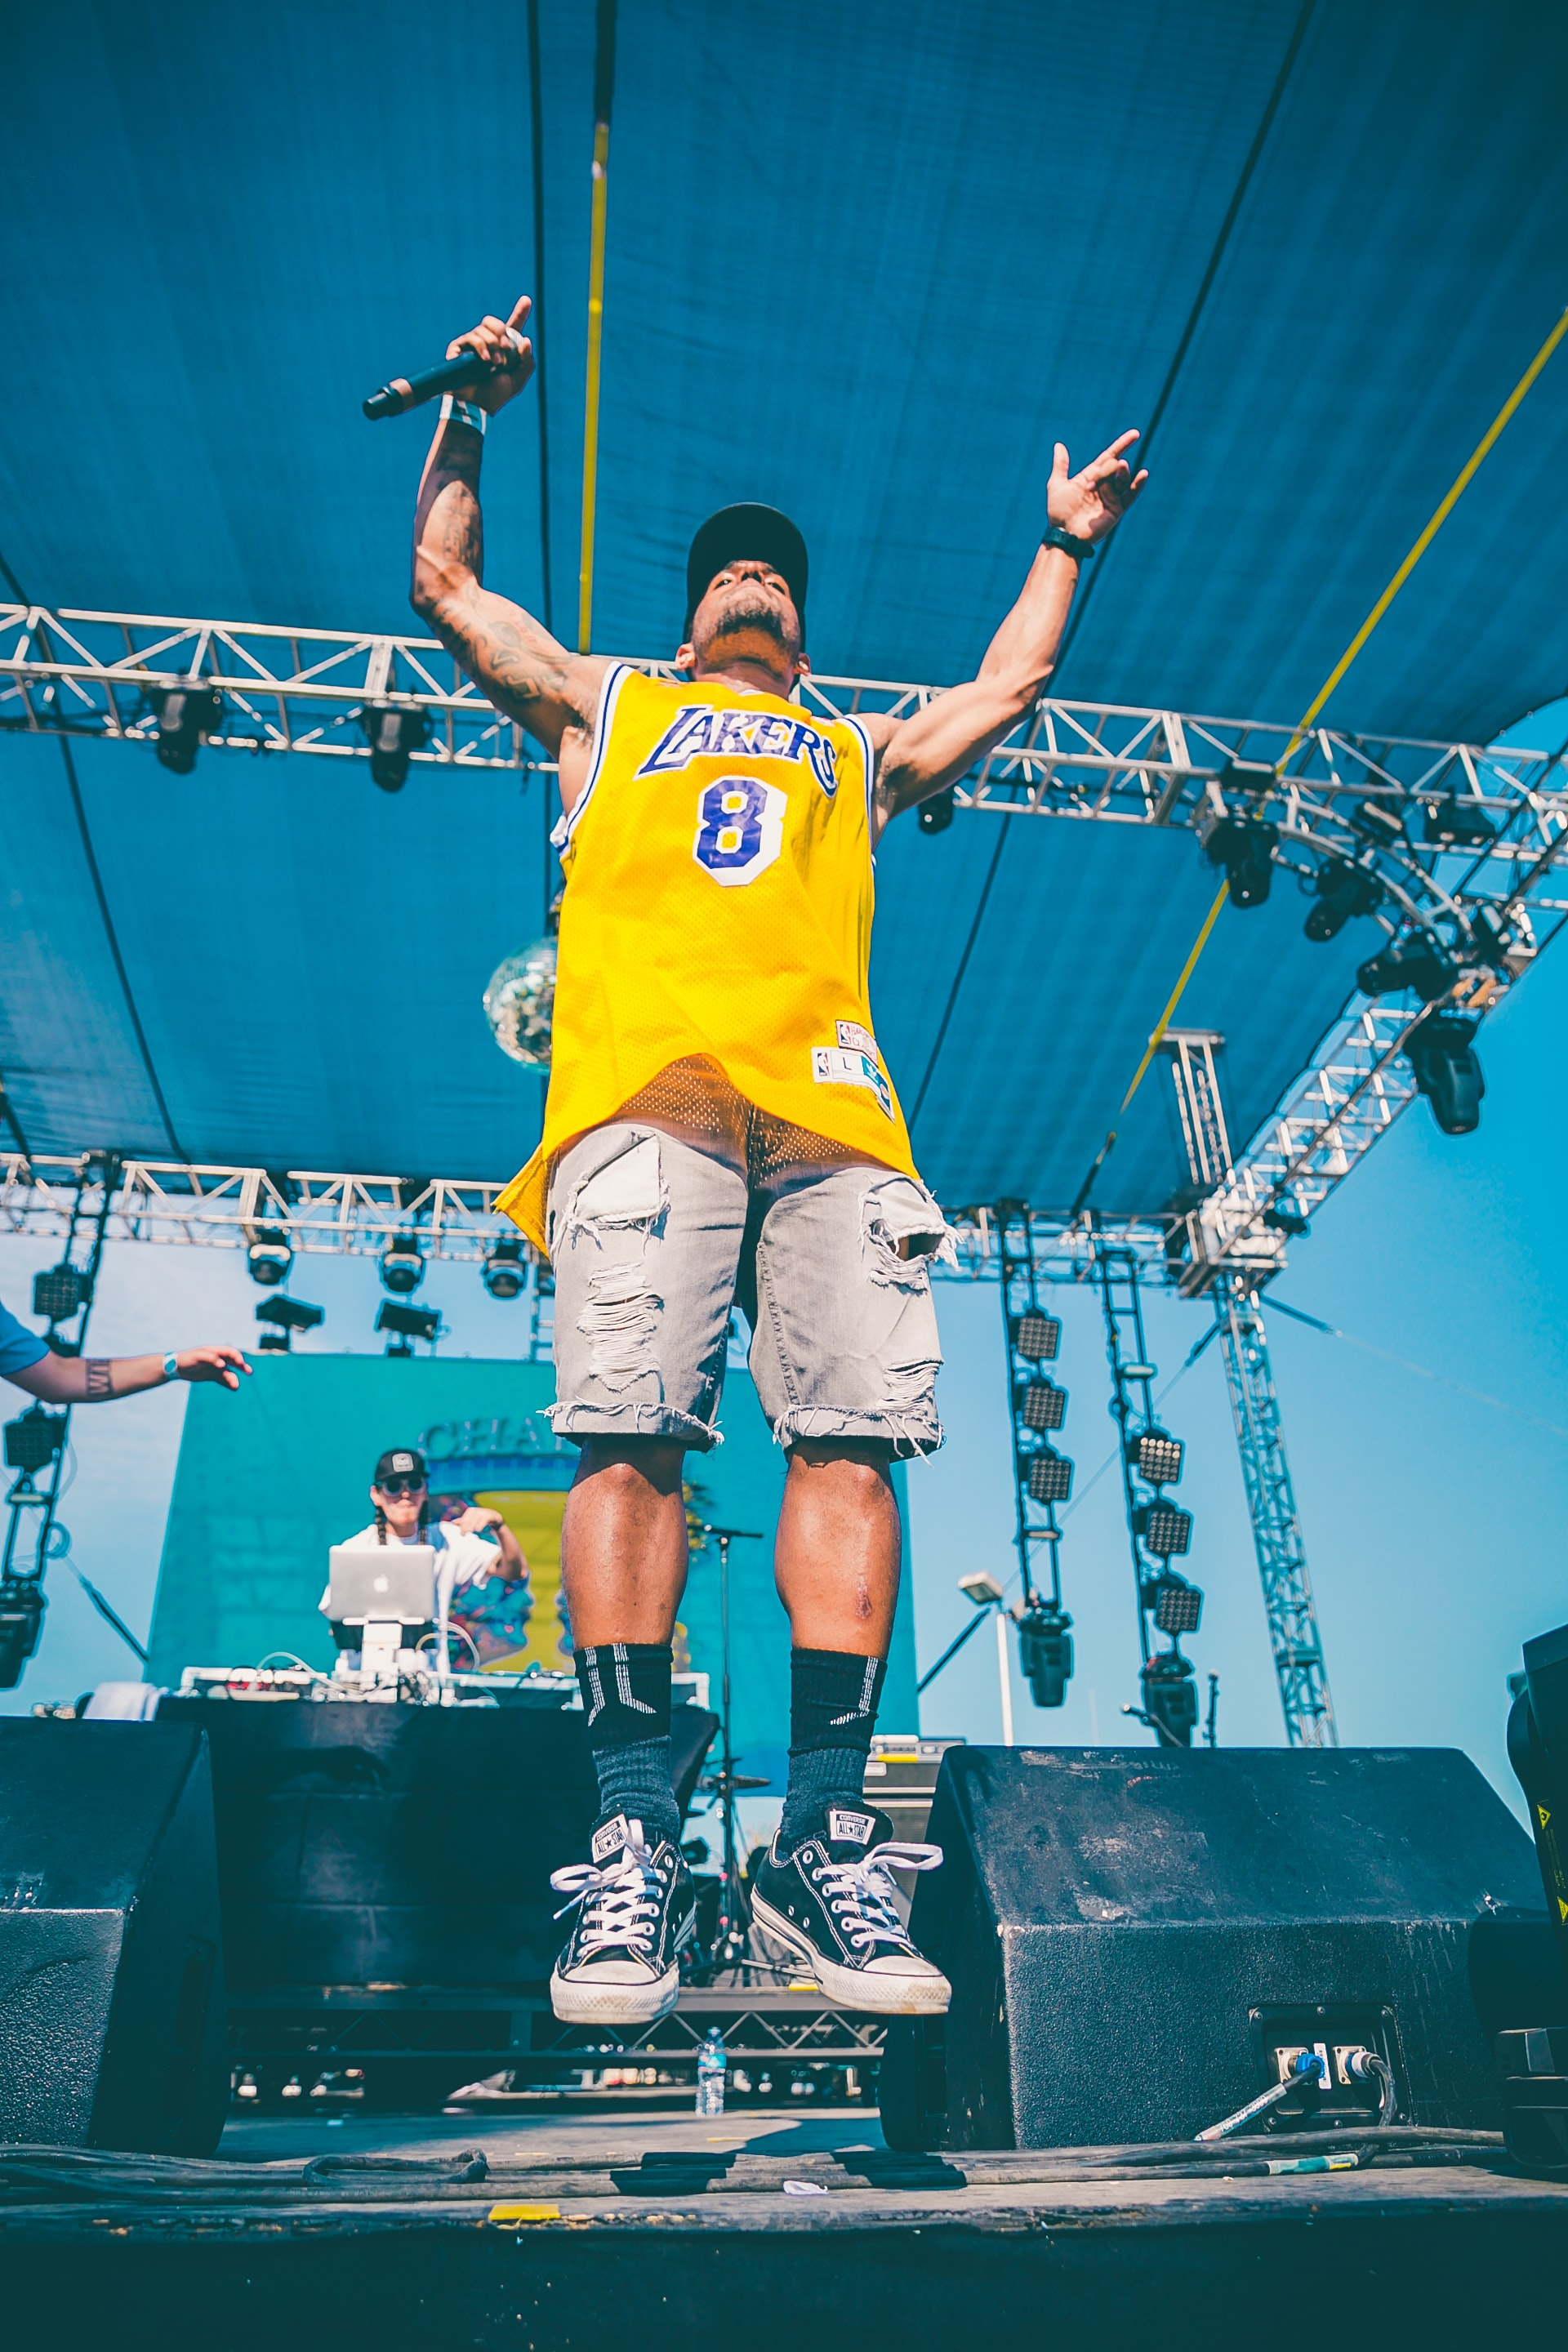 A man with a microphone in a yellow Lakers shirt jumping up on stage